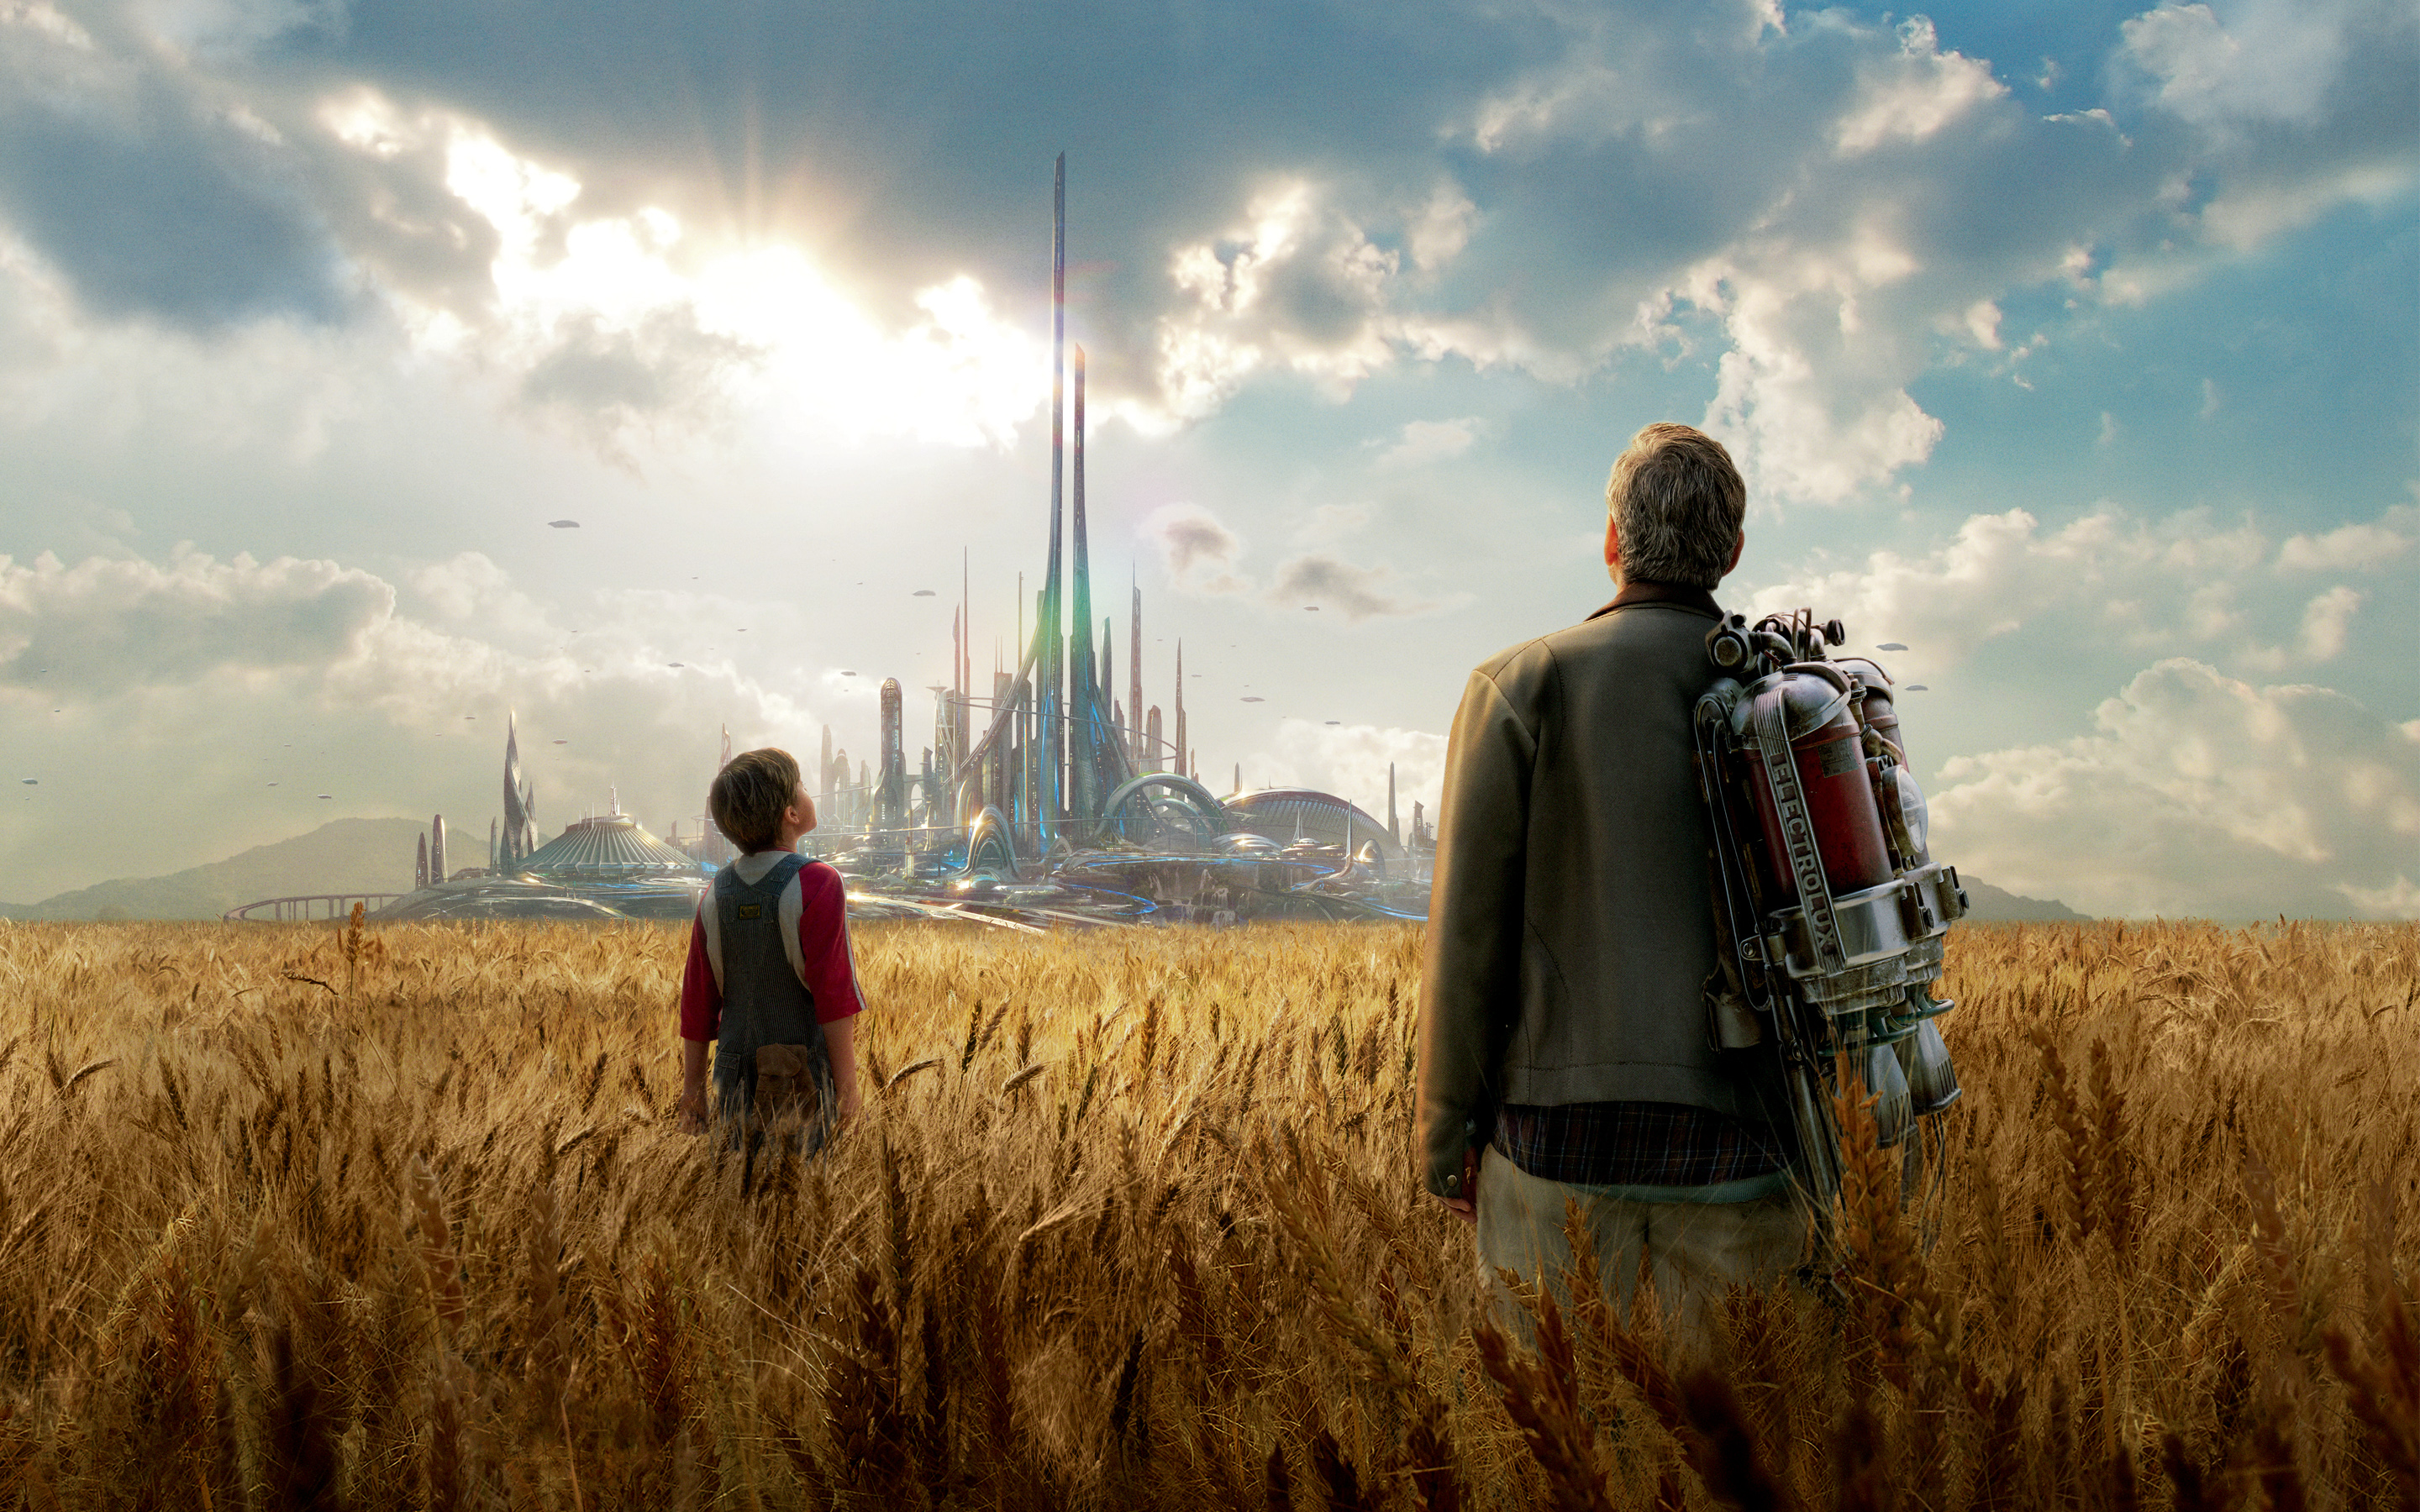 New tomorrowland movie hd desktop wallpapers 2015 all hd for In wallpaper